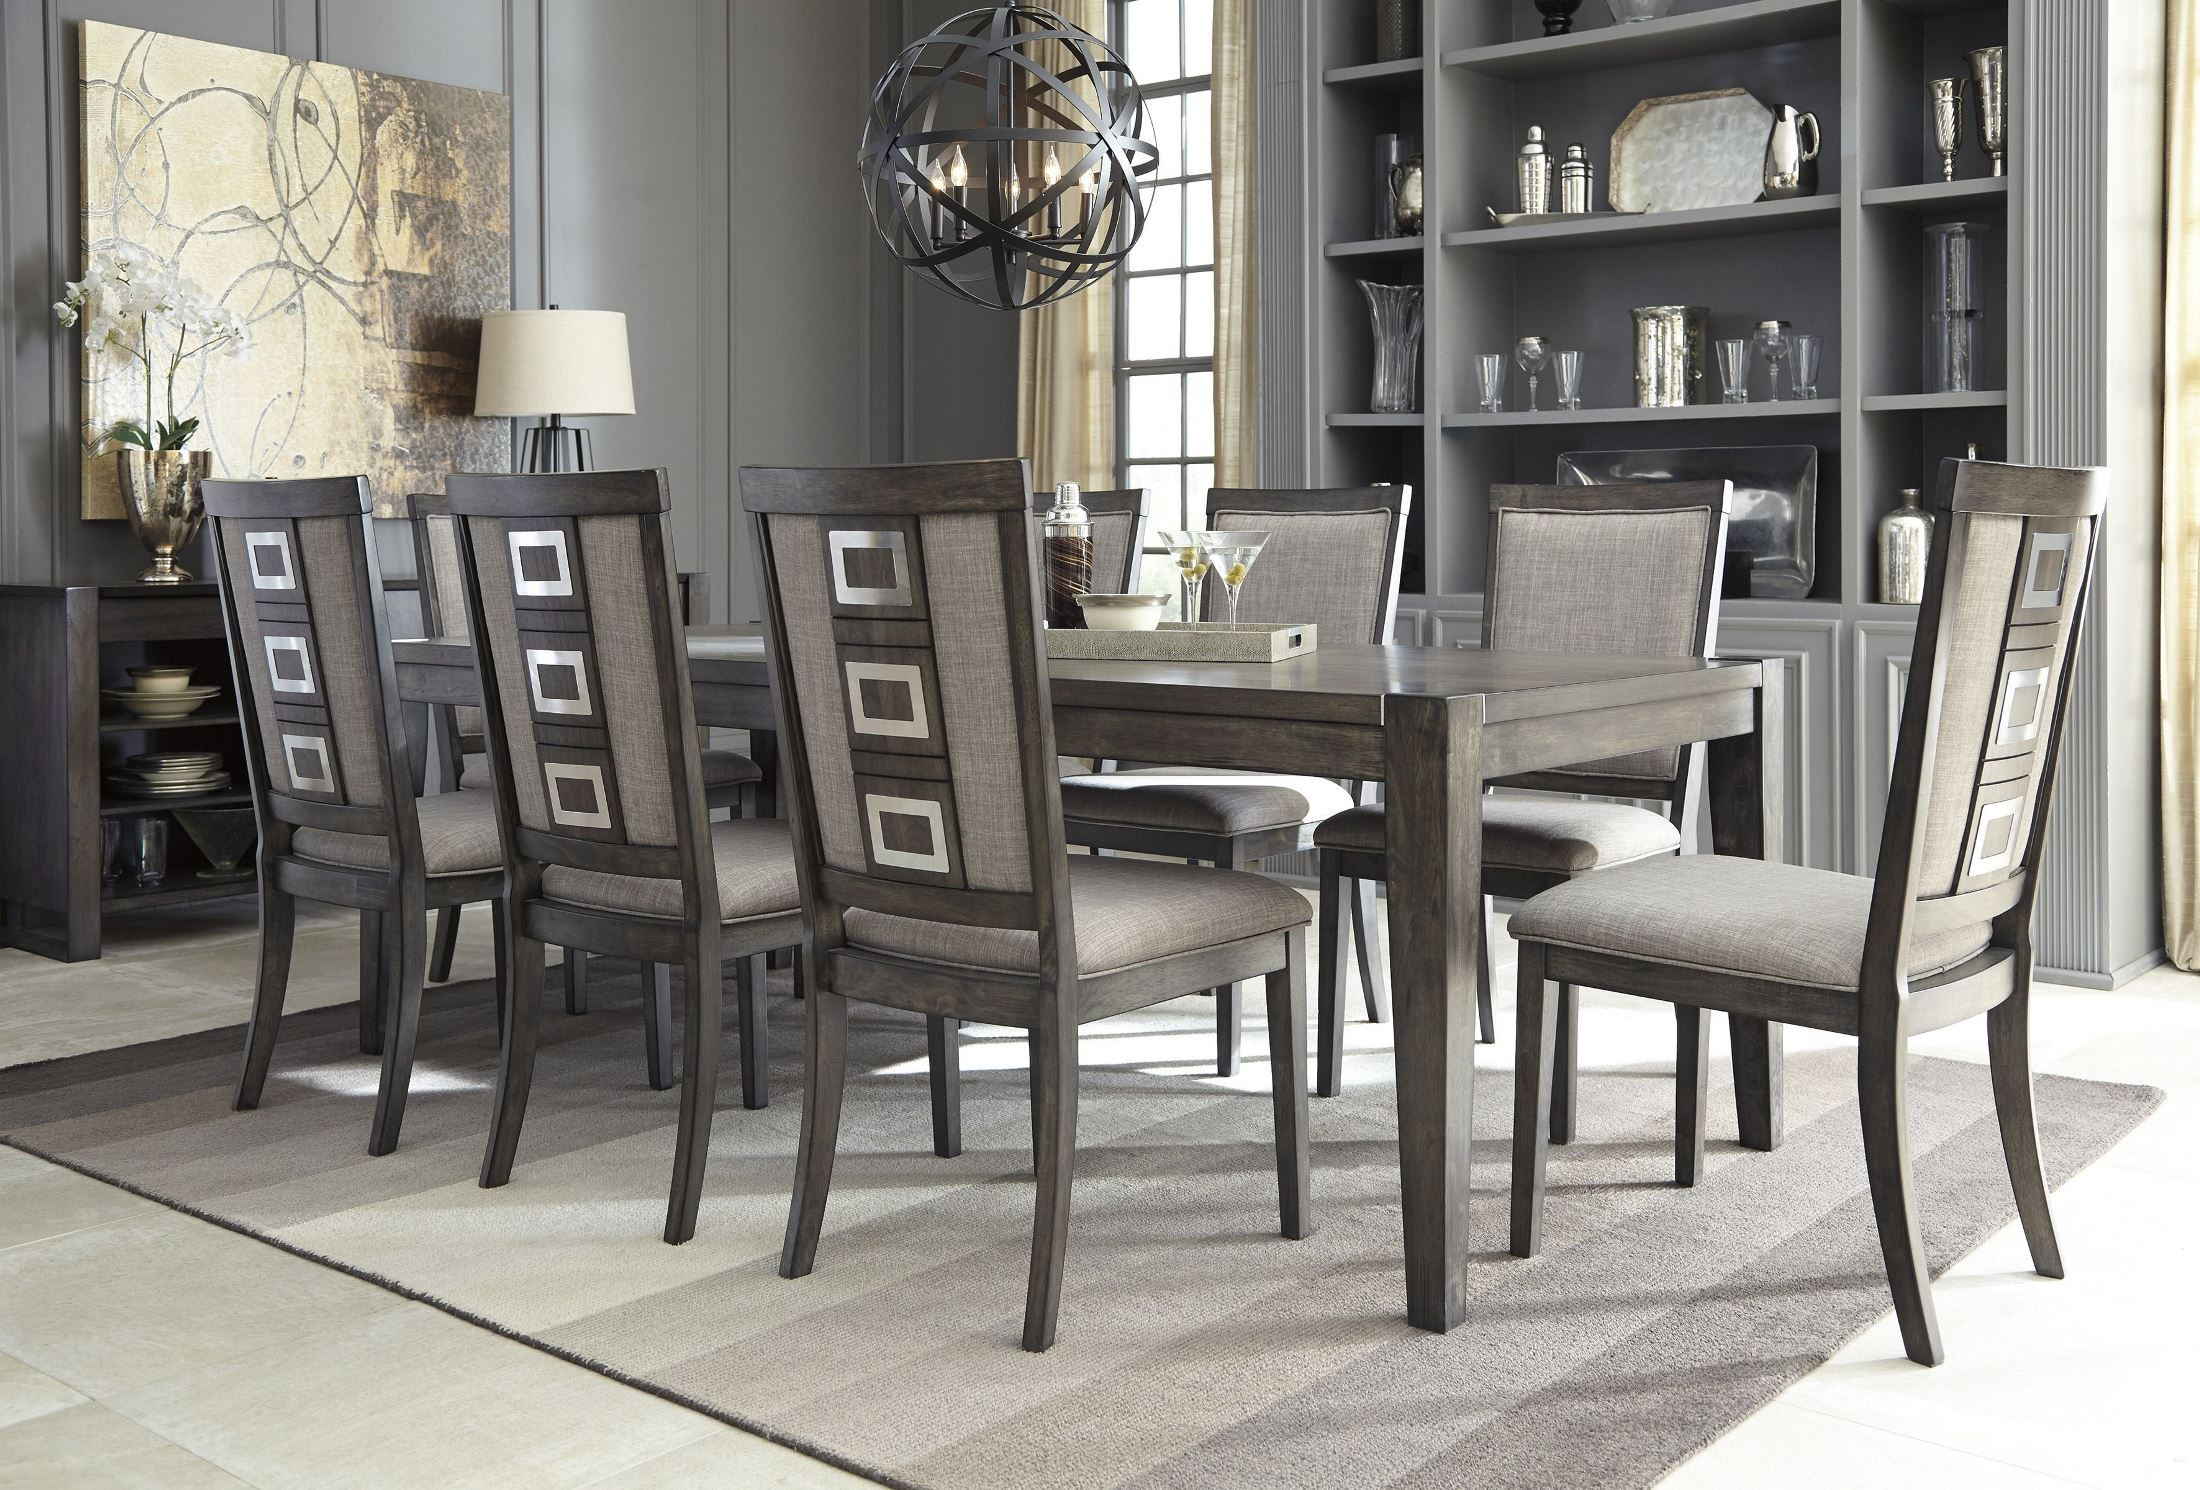 Table 6 Et 7 Chadoni Gray Rectangular Extendable Dining Room Set From